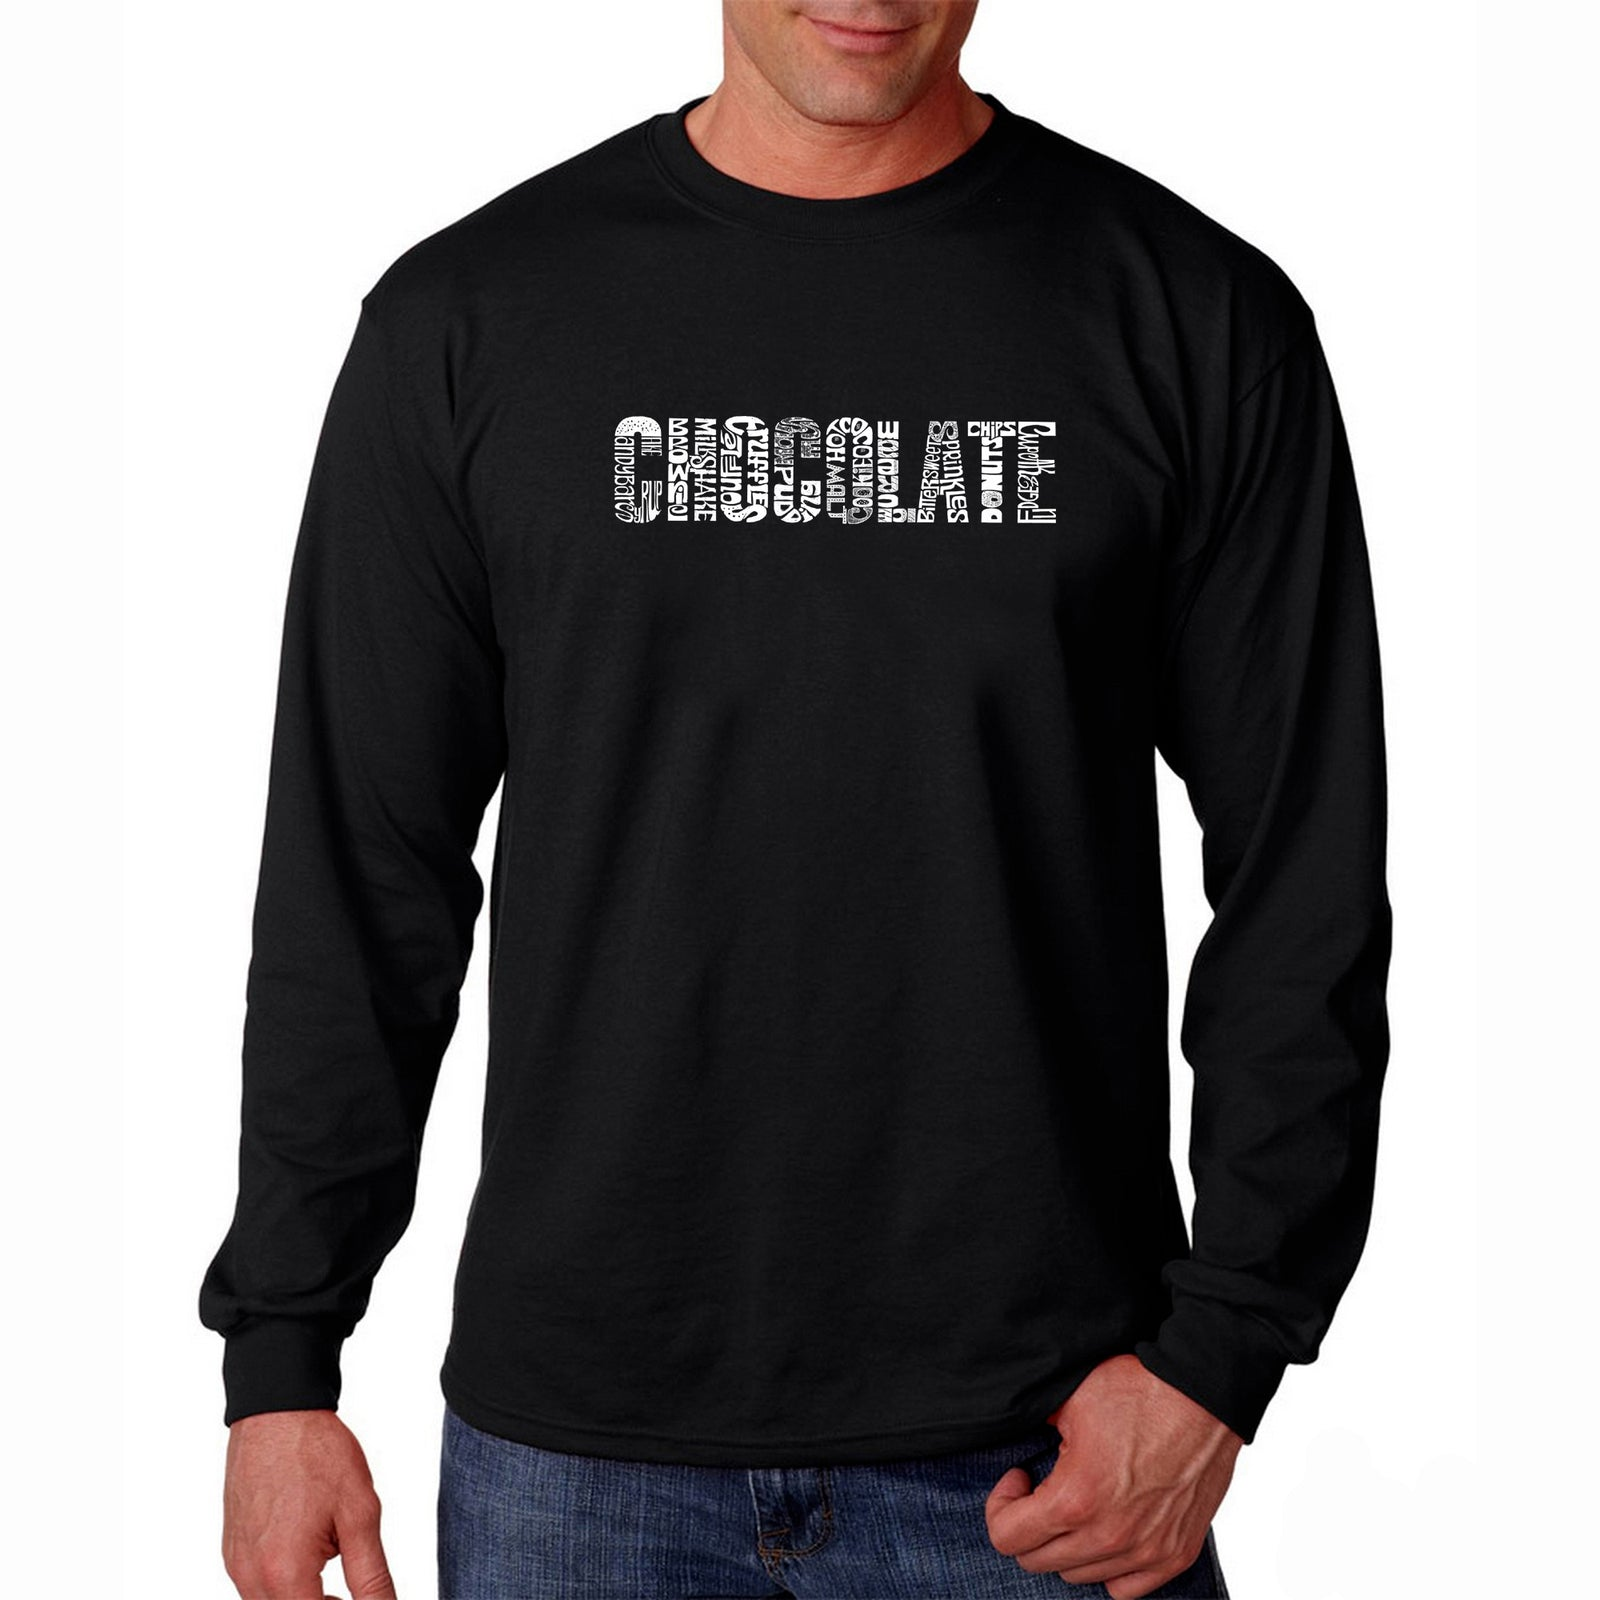 Men's Long Sleeve T-shirt - Different foods made with chocolate